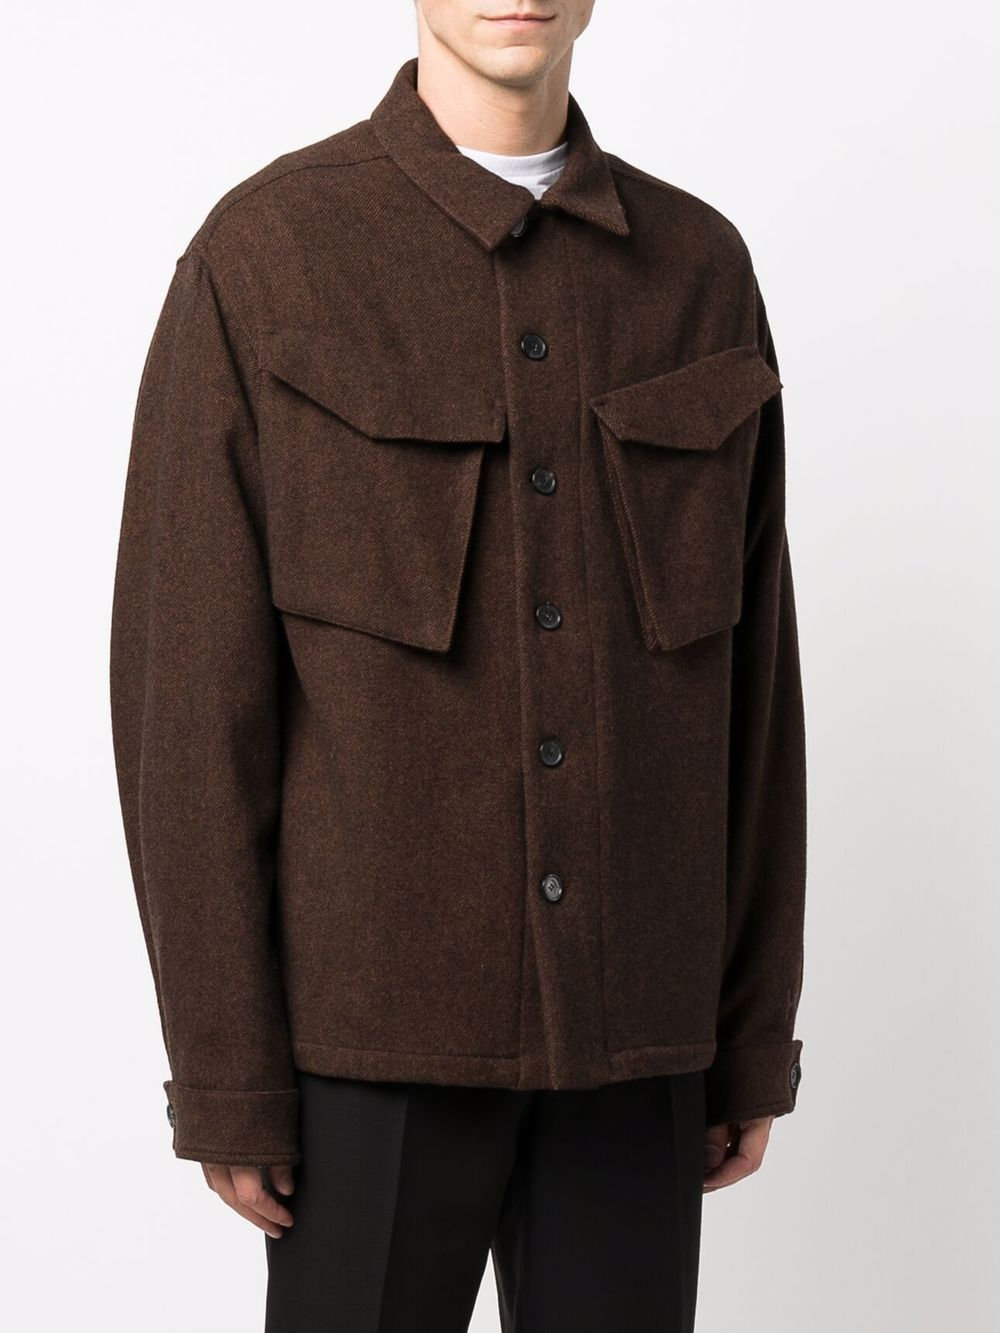 Brown wool and flannel shirt jacket featuring embroidered Kenzo logo  KENZO |  | FB6-5VE213-1RB90